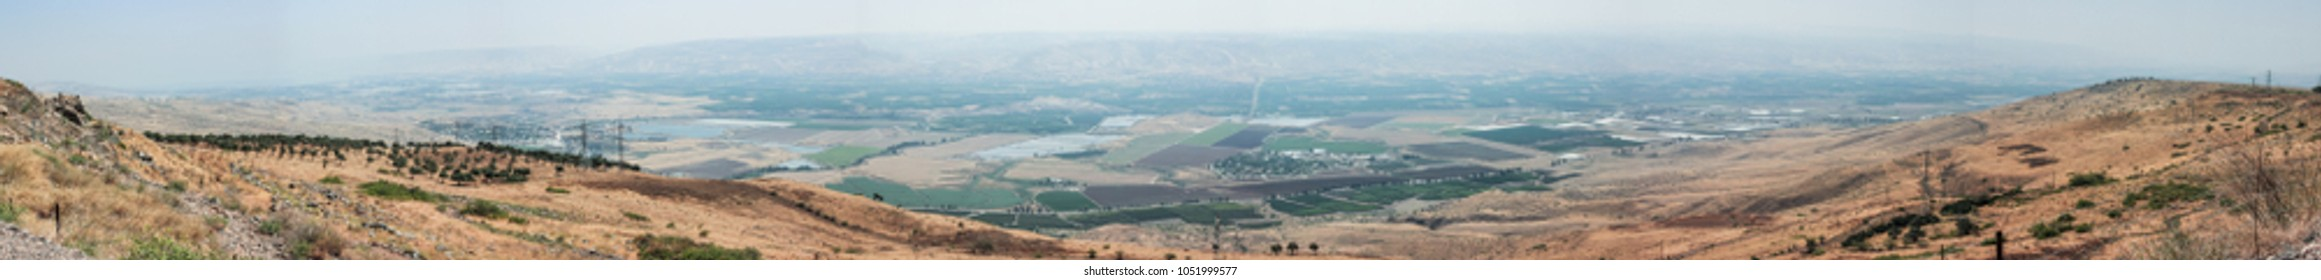 Panoramic view of the Jordan Valley from the walls of the Belvoir fortress - Jordan Star - in the Jordan Star National Park near Afula town in Israel